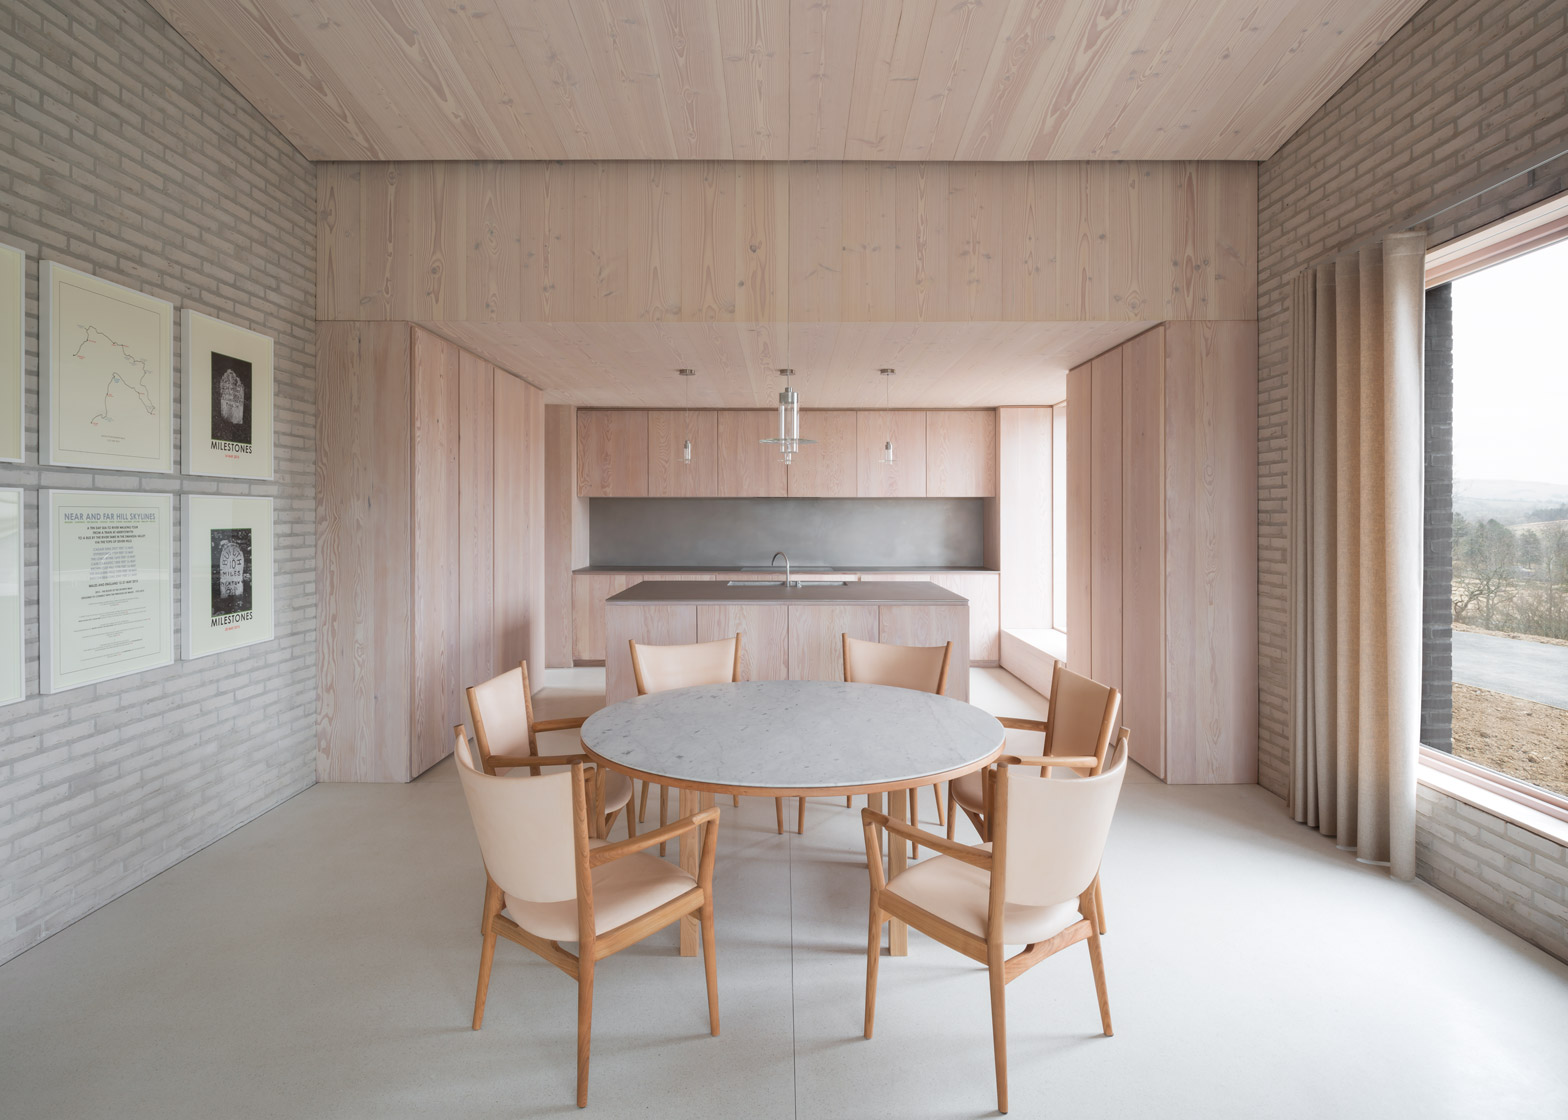 Life house by John Pawson